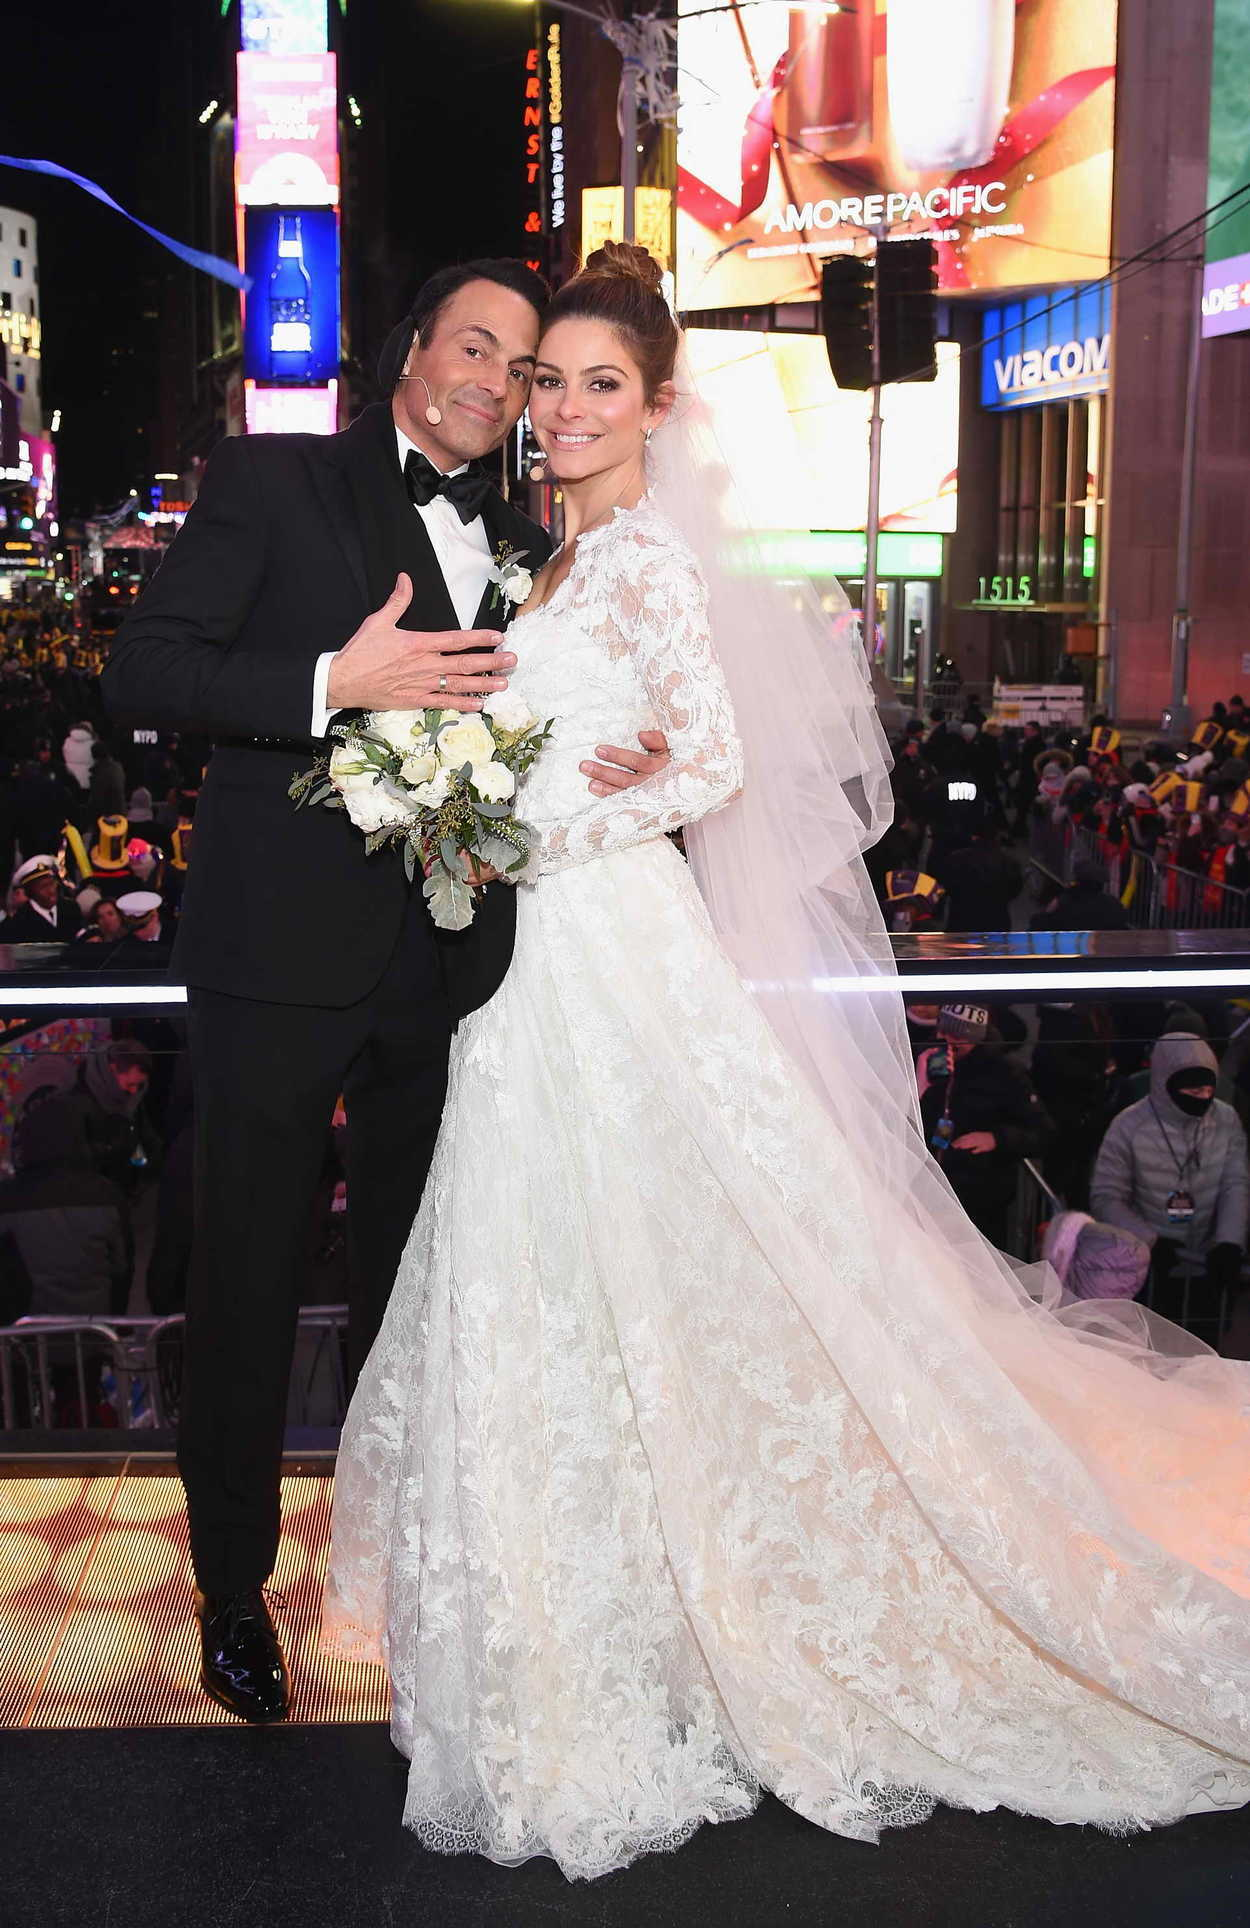 Maria Menounos Gets Married on Live TV on New Year's Eve